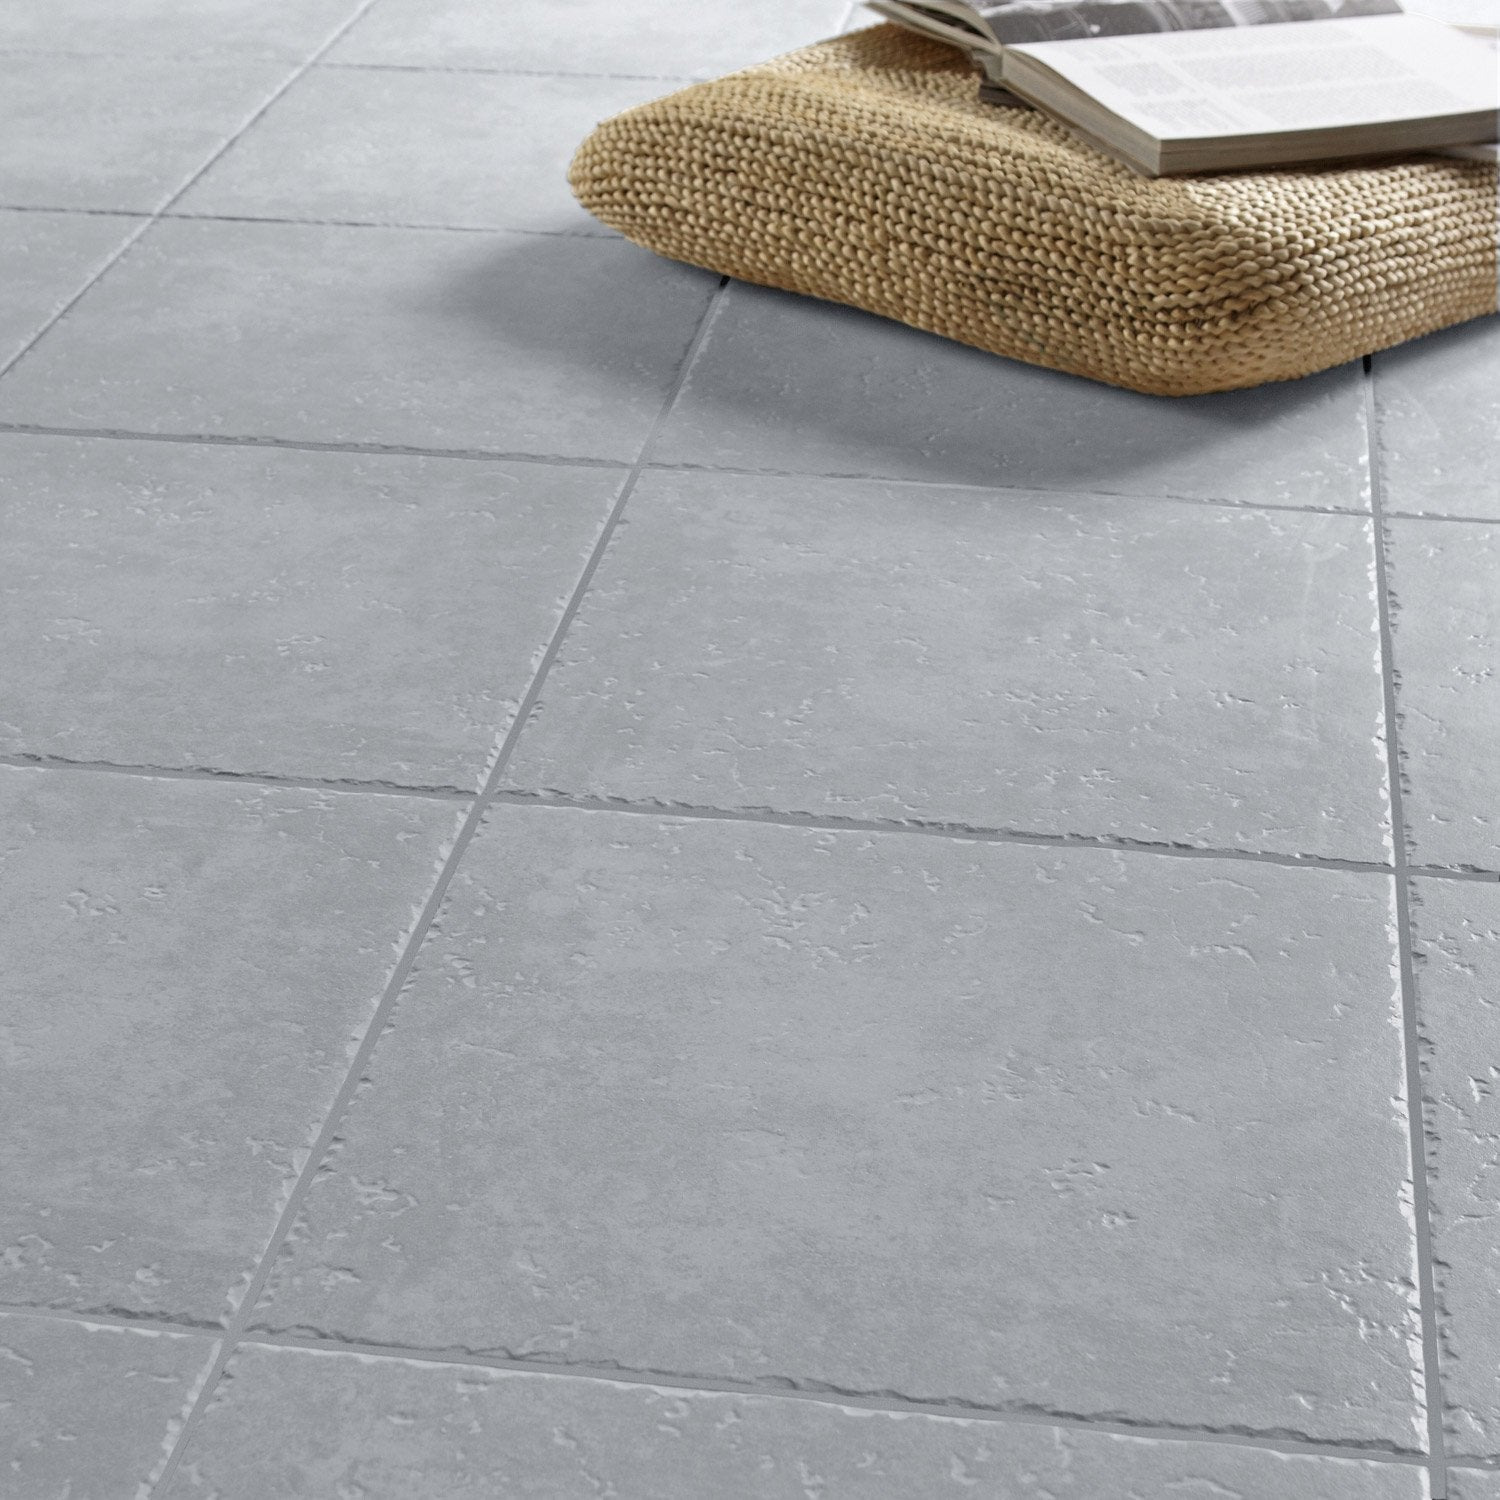 Carrelage sol gris effet pierre michigan x cm for Carrelage ardoise leroy merlin